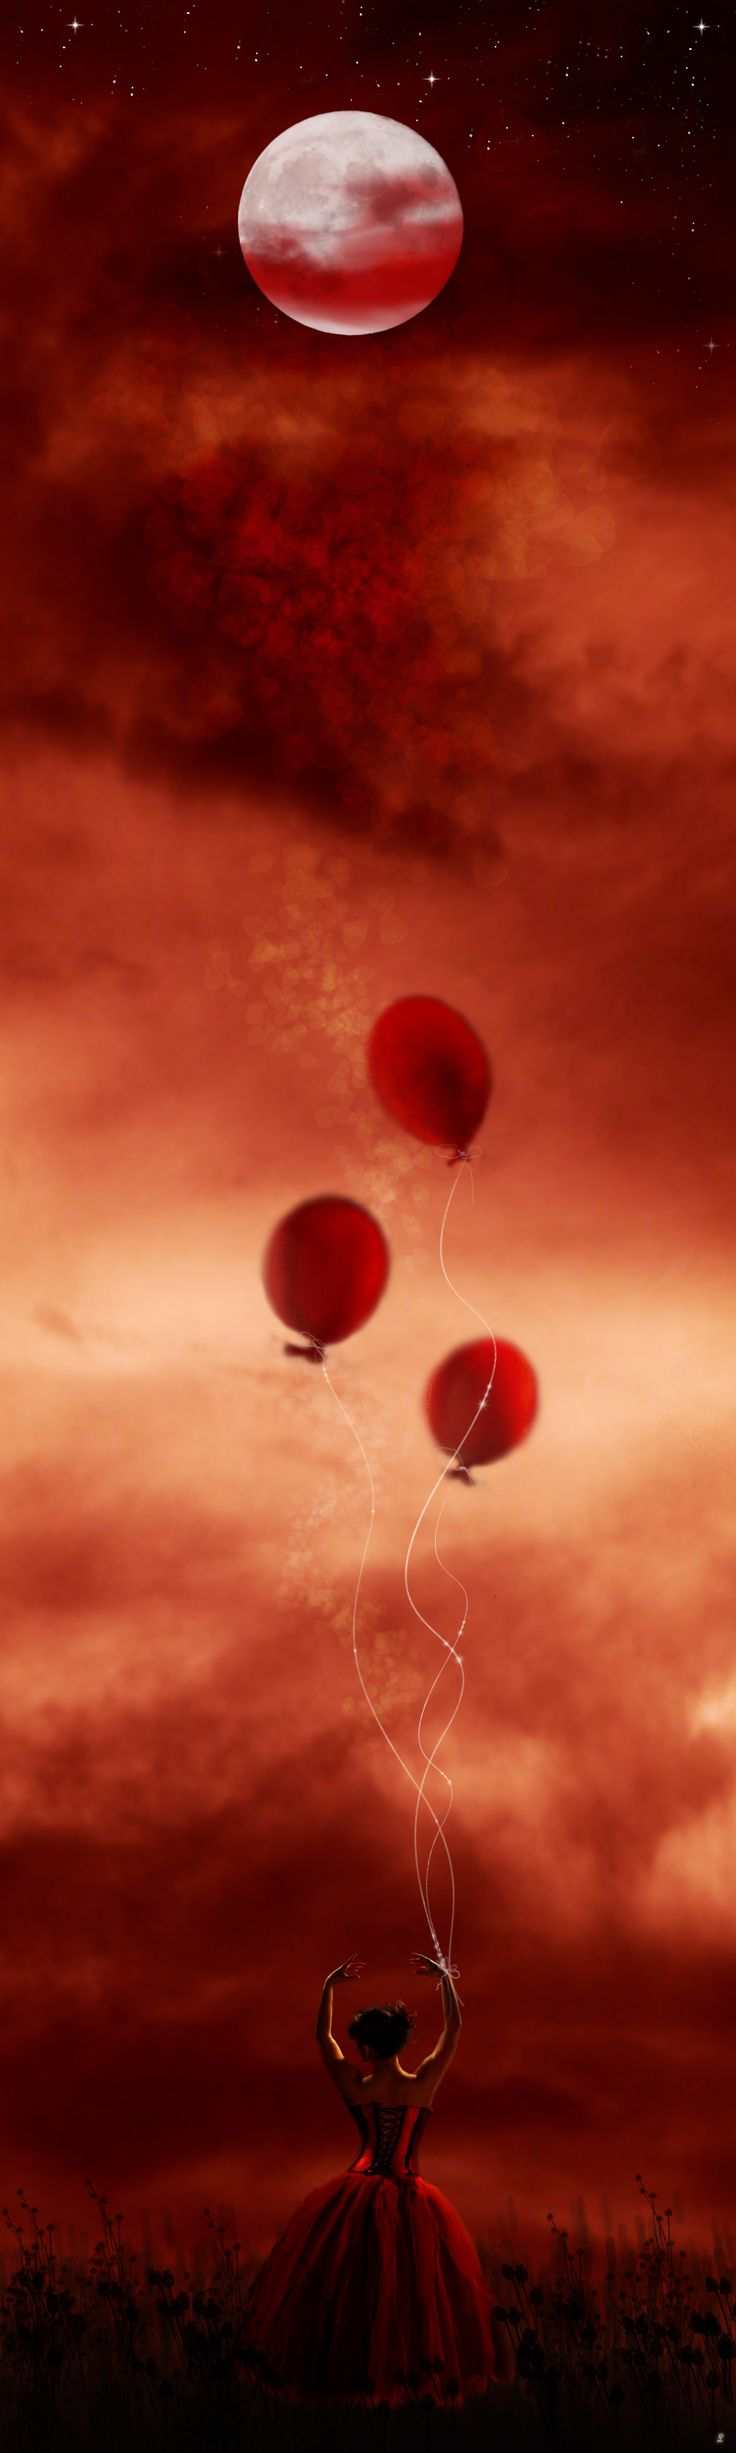 Red Moon Balloons